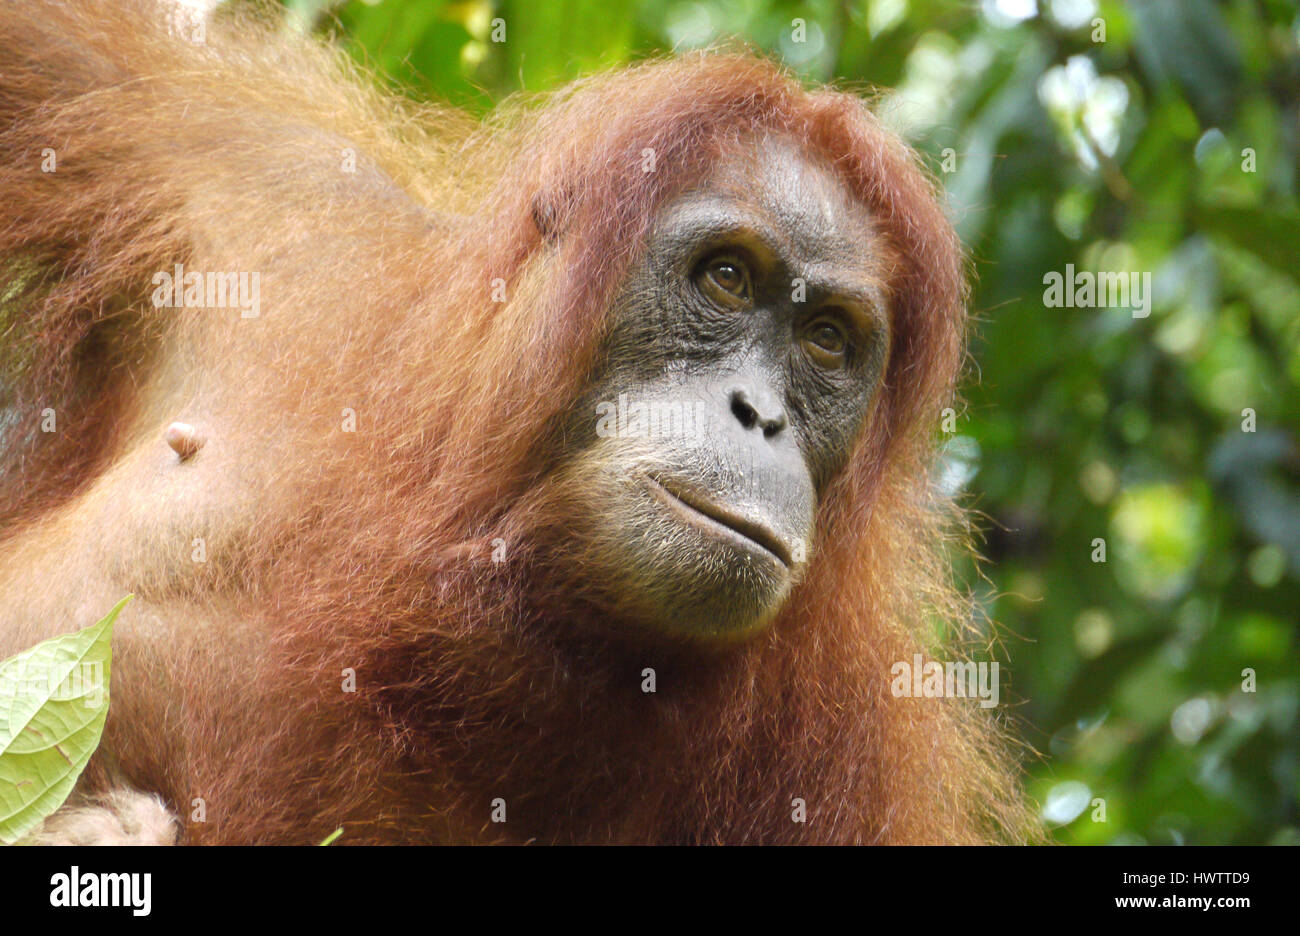 Sumatran Orangutan, Indonesia Stock Photo